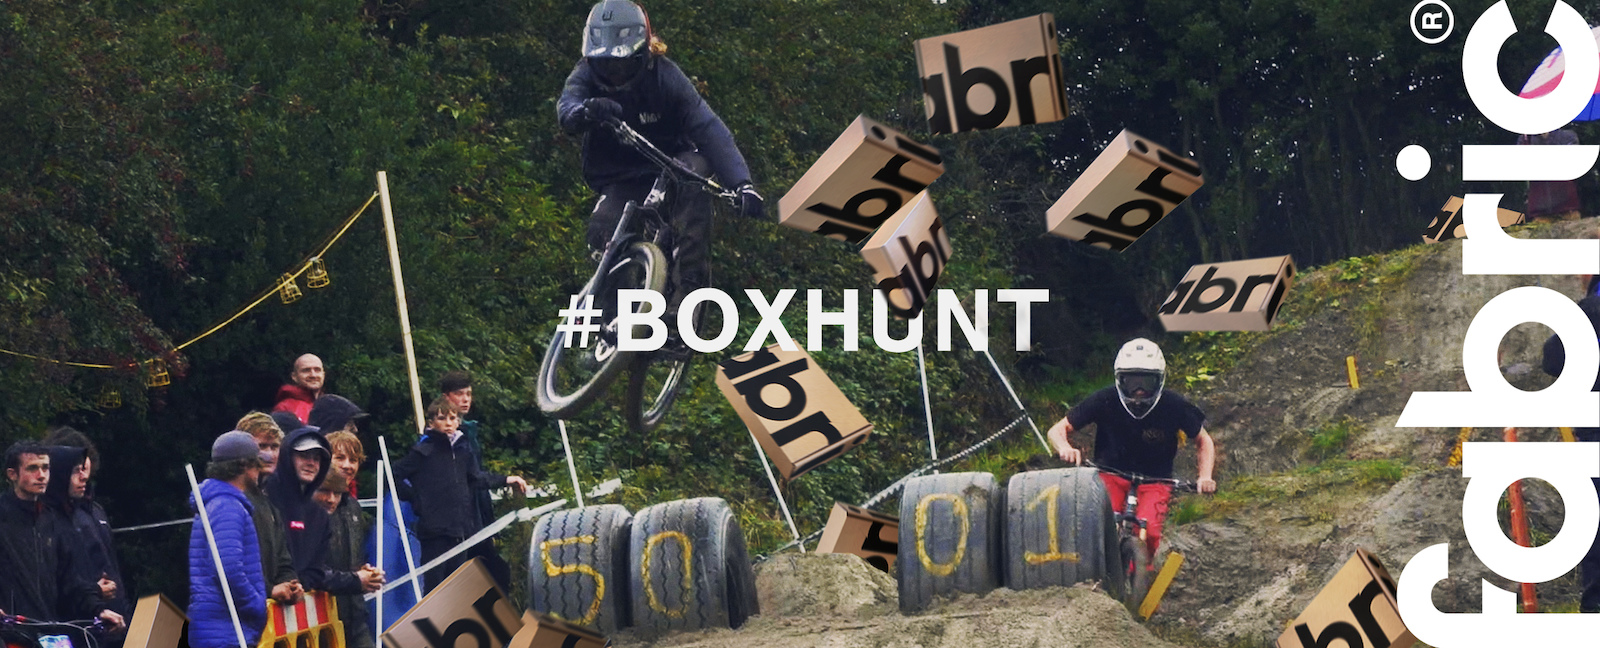 Win Even More With Fabric Box Hunt